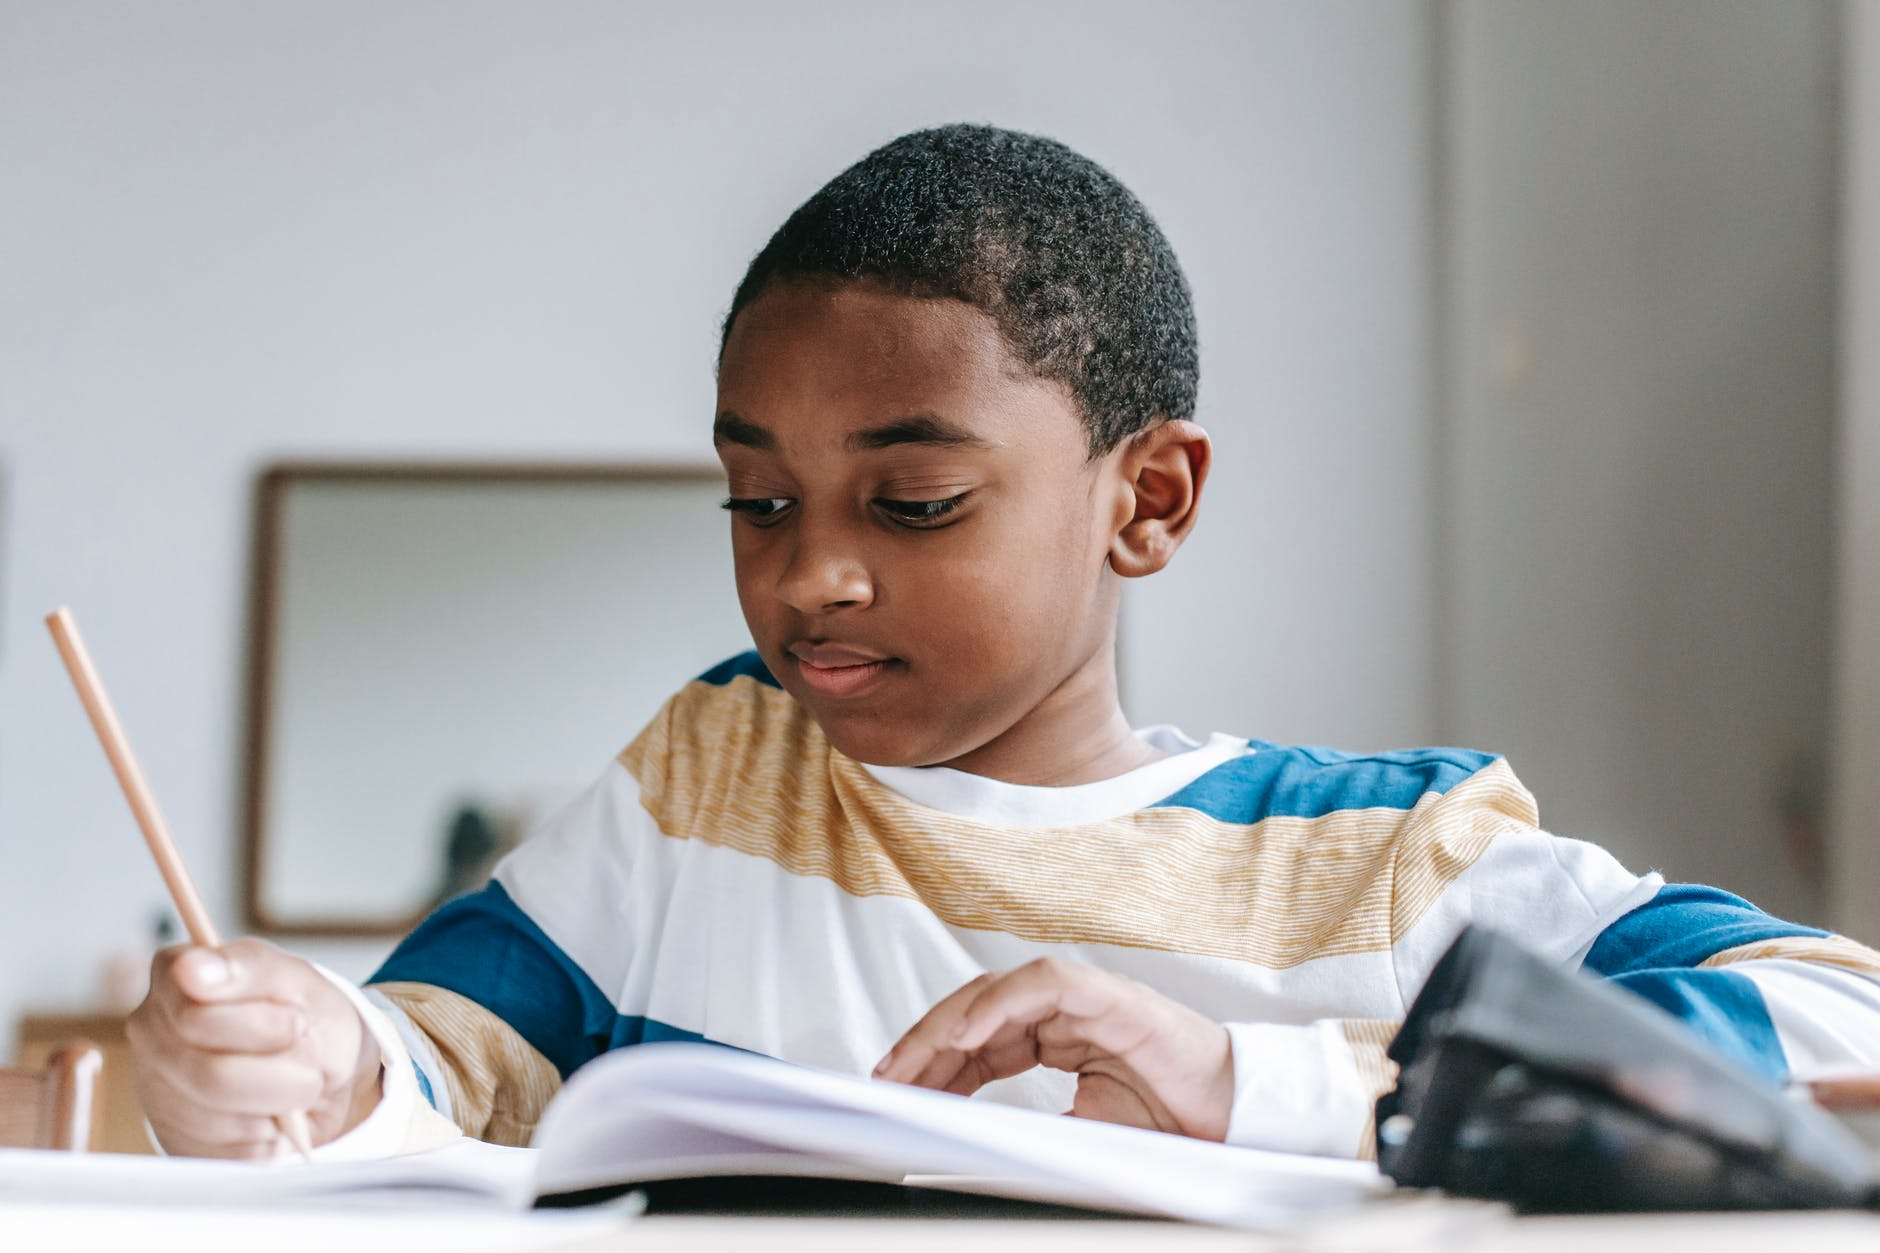 Homework Remedial Programs- bring your homework, assignments, and school activities to focus on re-learning concepts & closing the learning gap.